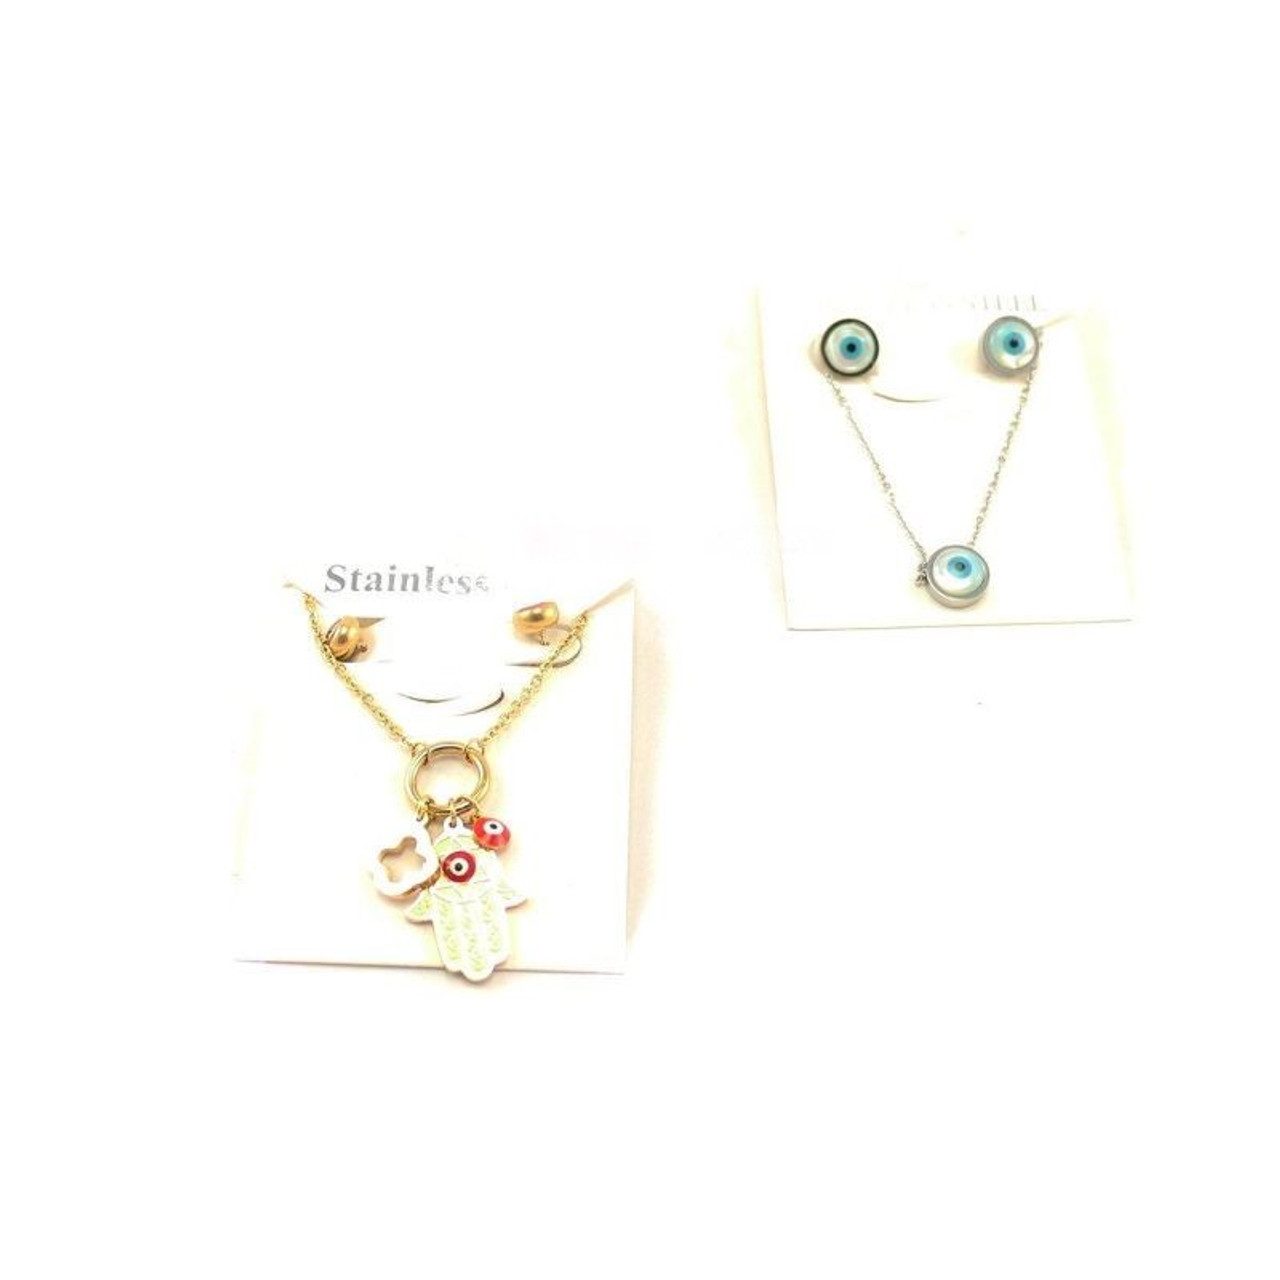 Evil Eye Necklace Chain with Stainless Steel Earrings